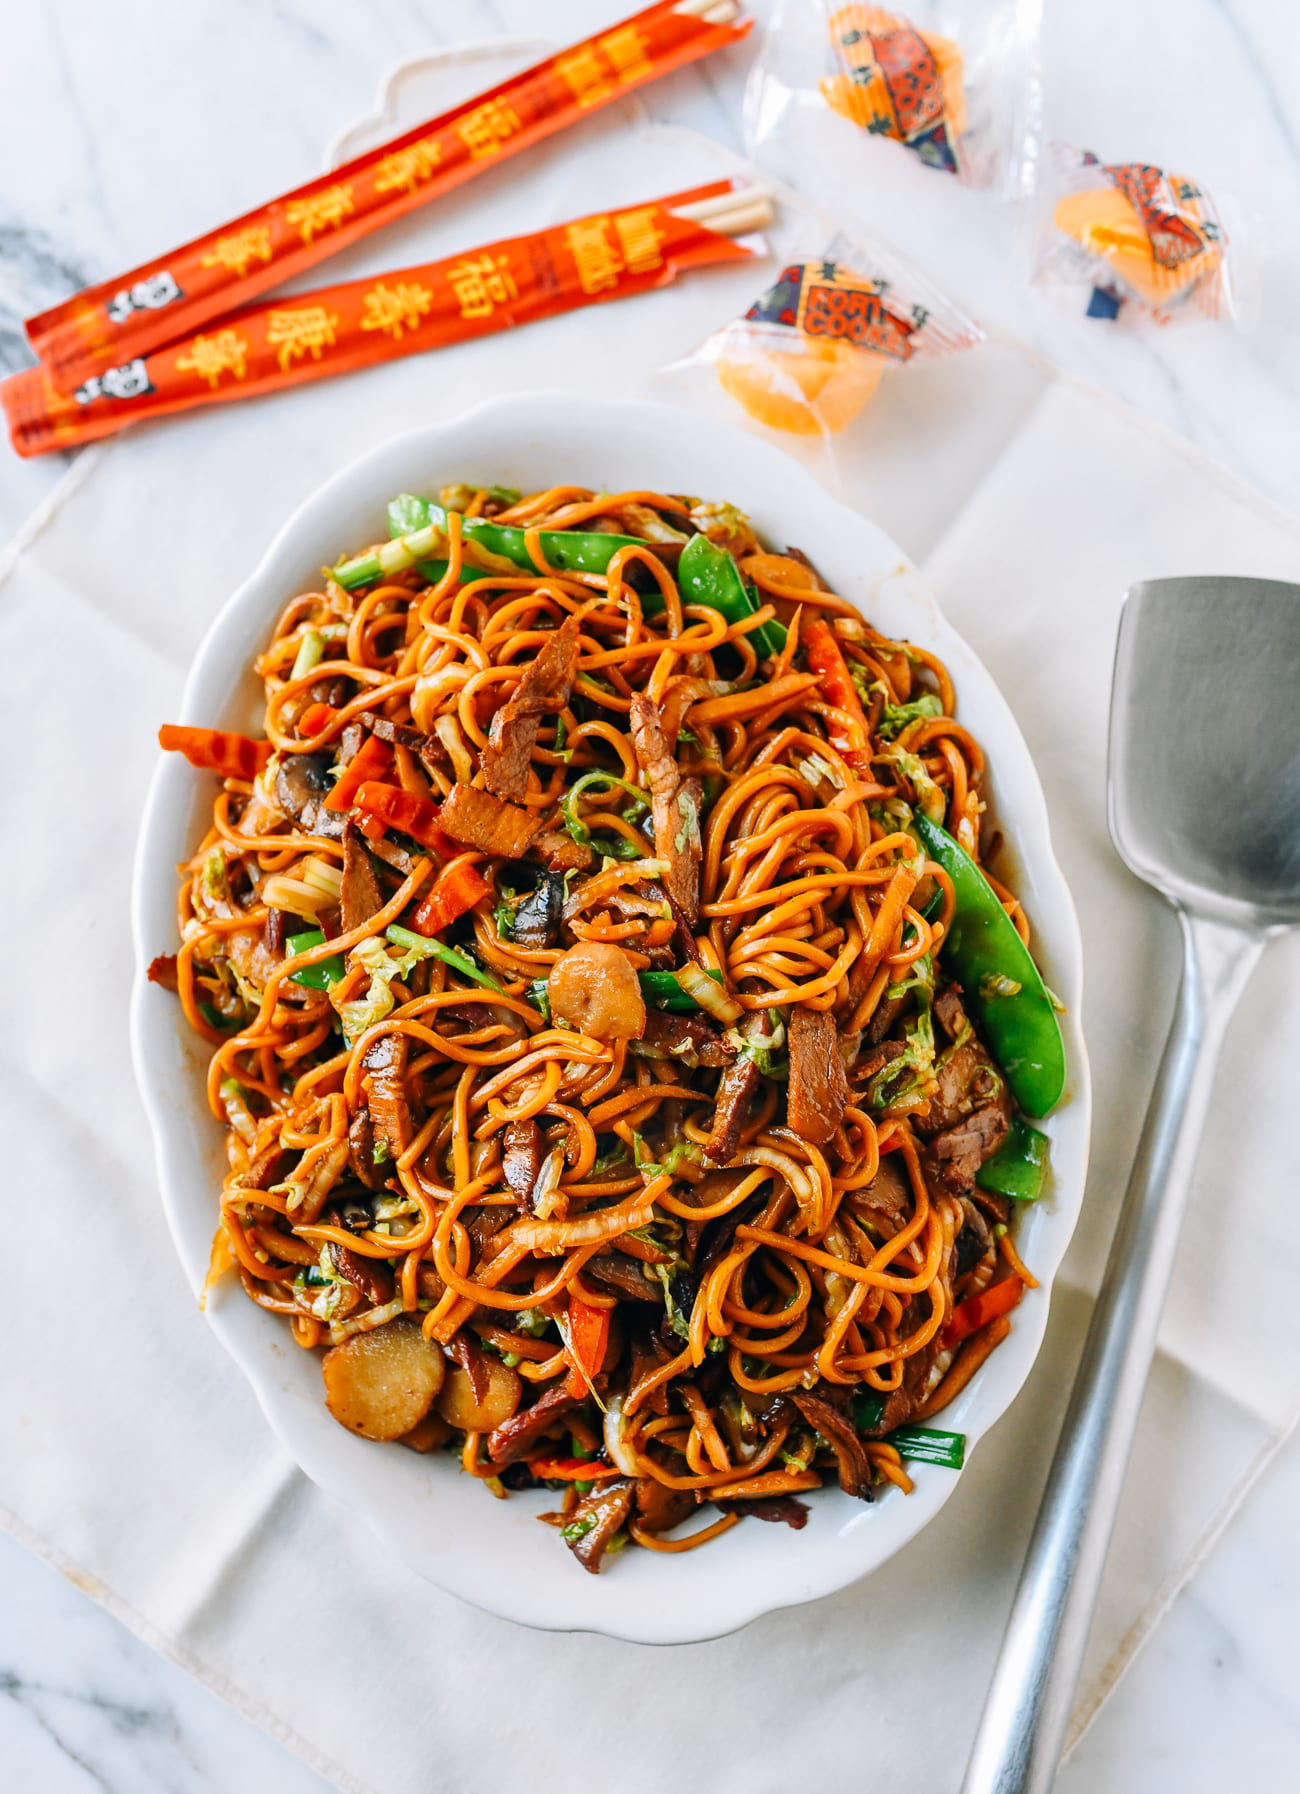 Plate of Pork Lo Mein